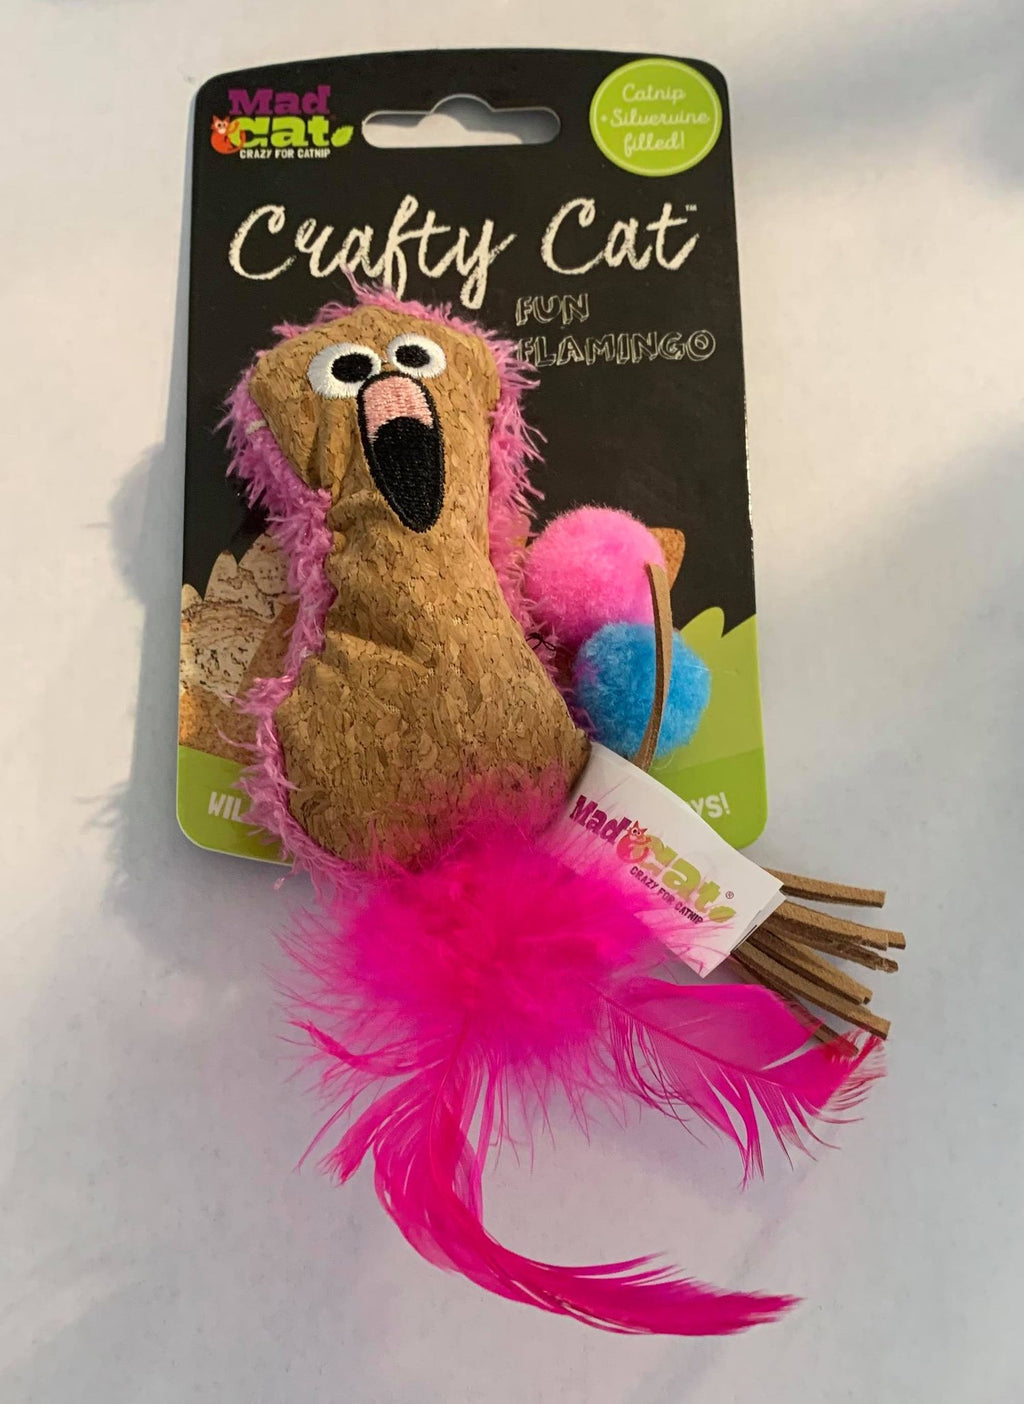 Mad Cats Fun Flamingo Crafty Cat Crazy for Catnip